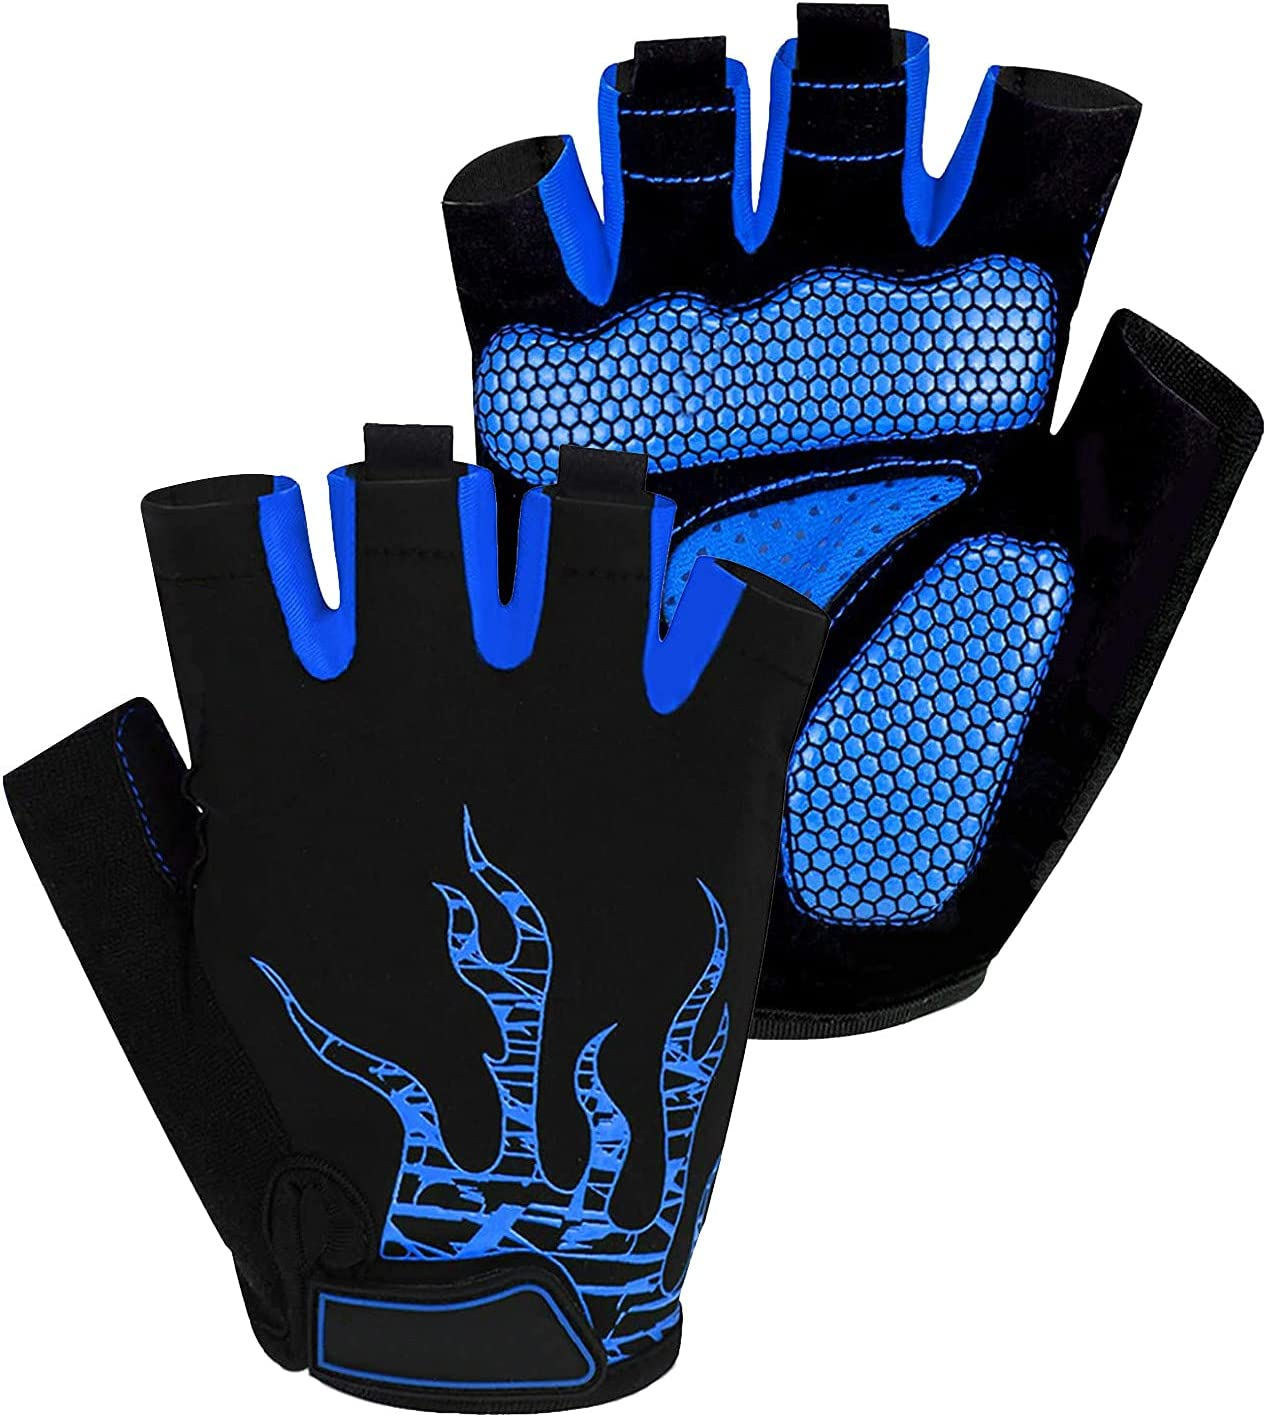 Voroar Cycling Gloves, Half Finger Mountain Bike Gloves with Shock-Absorbing Gel Pad for Men and Women